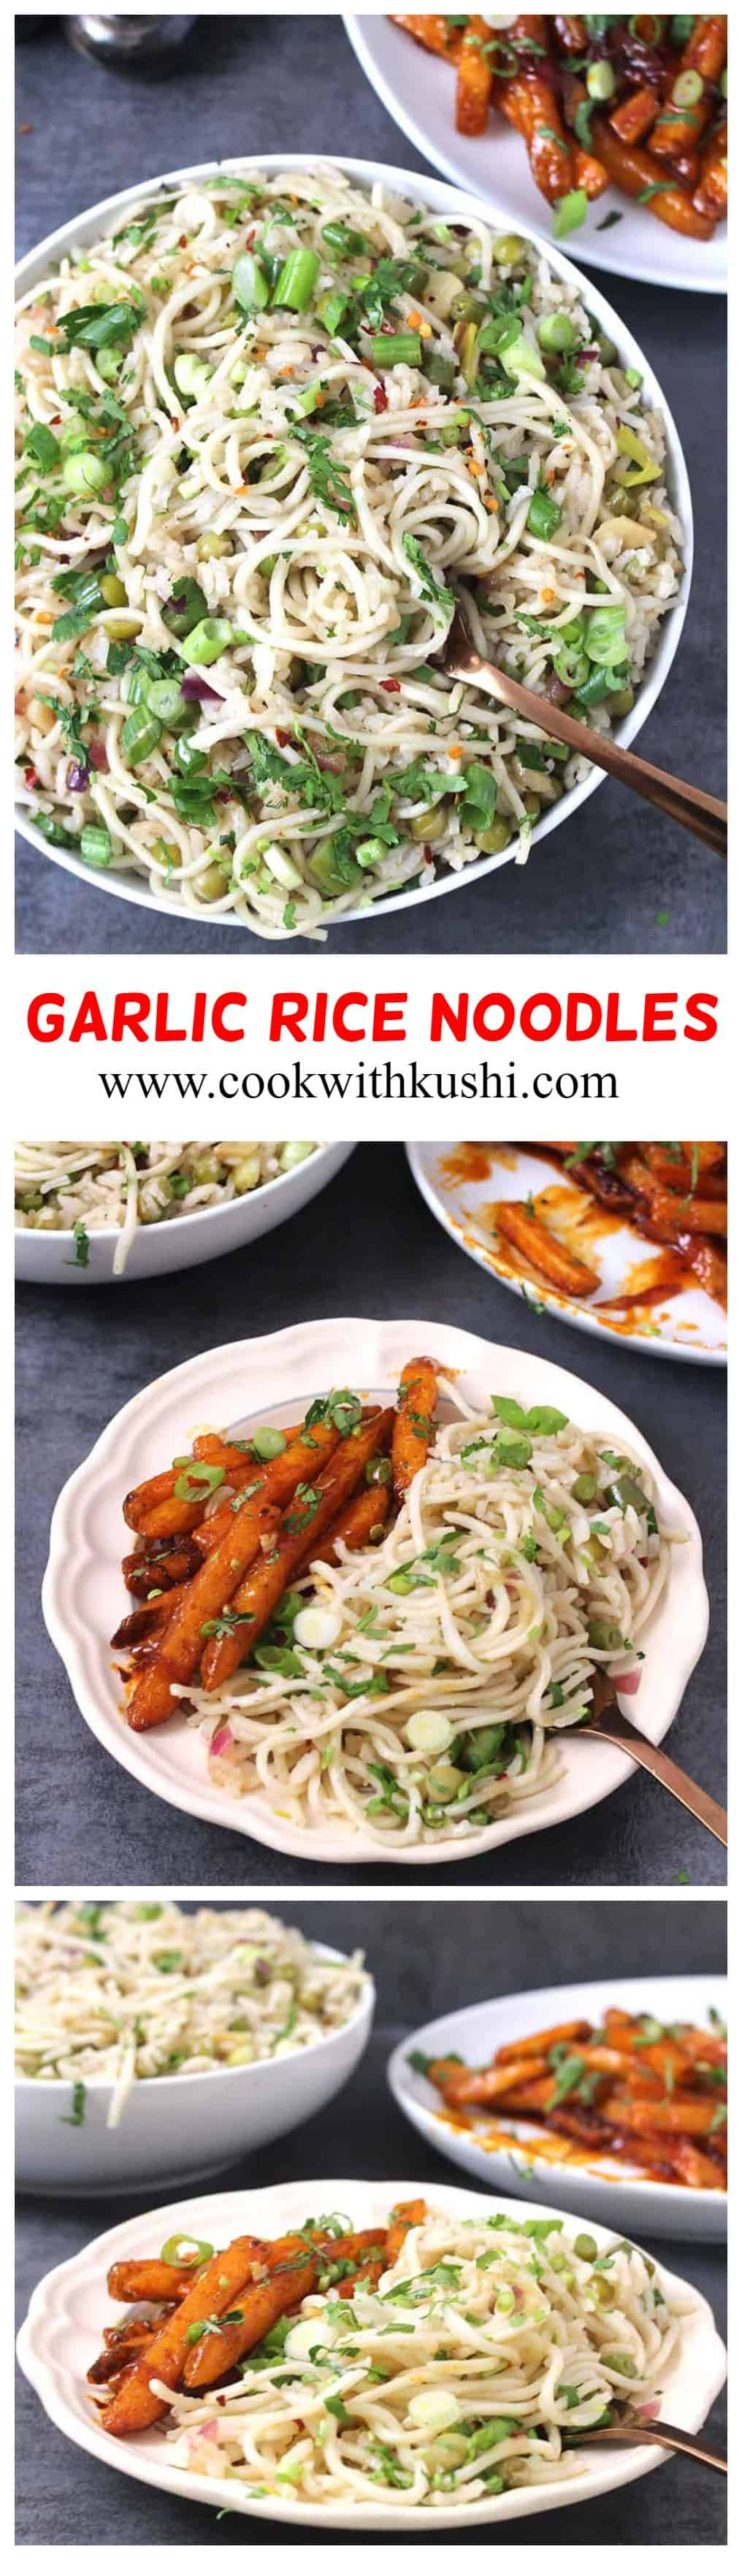 Garlic Rice Noodles is a delicious combination of rice and noodles tossed in roasted garlic, vegetables of your choice and sauces #garlicnoodles #garlicrice #friedrice #schezwannoodles #potluck #gamenight #lunchbox